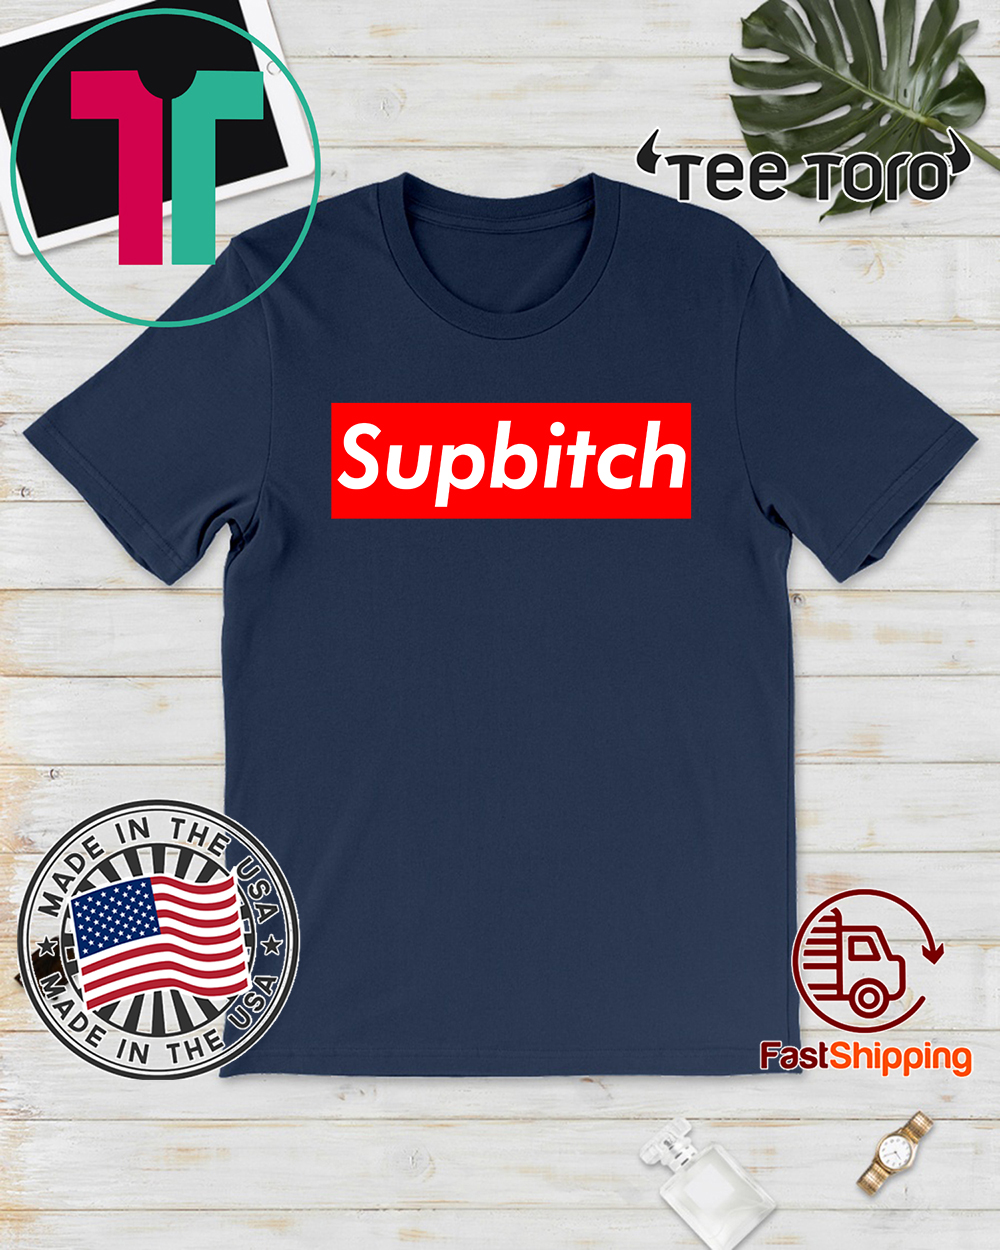 #2020Supbitch - Supbitch T-Shirt